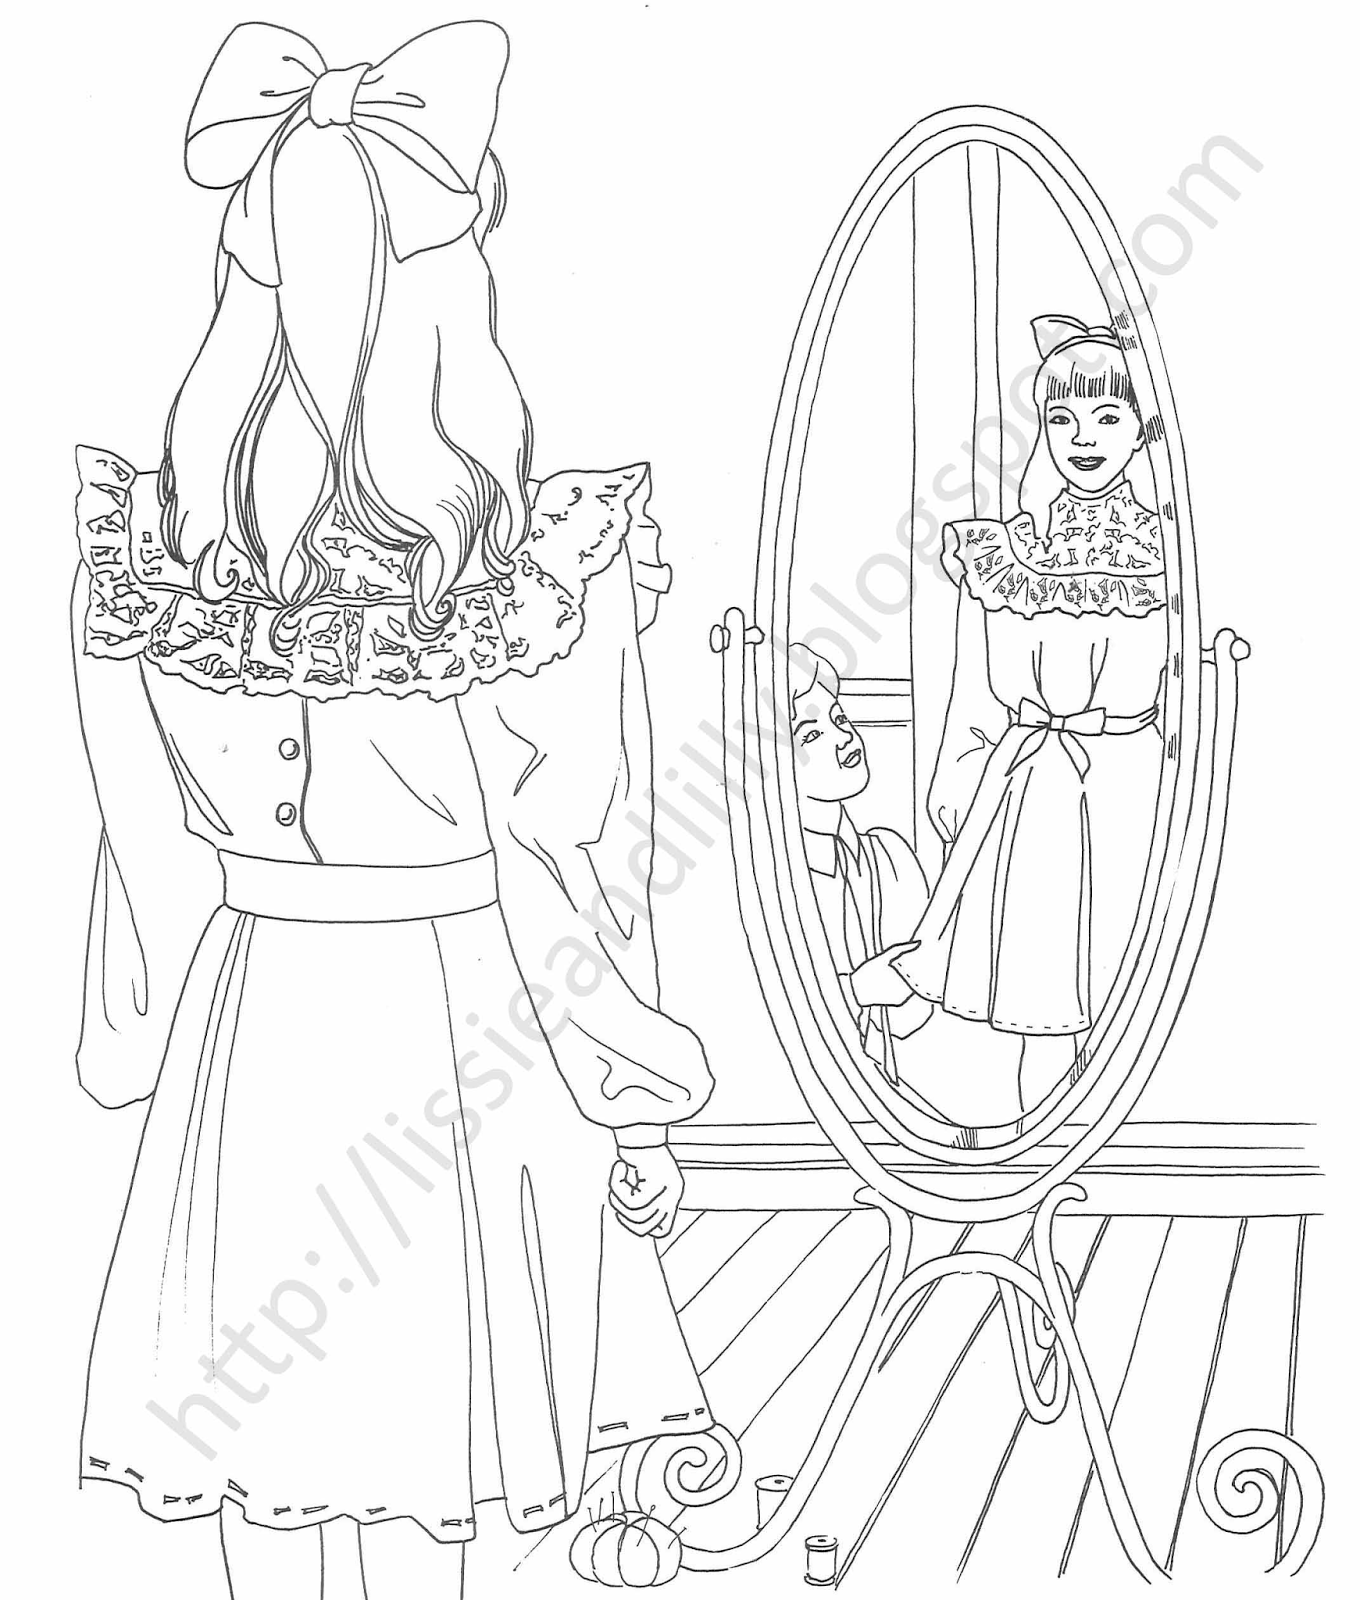 makayla coloring pages - photo#26